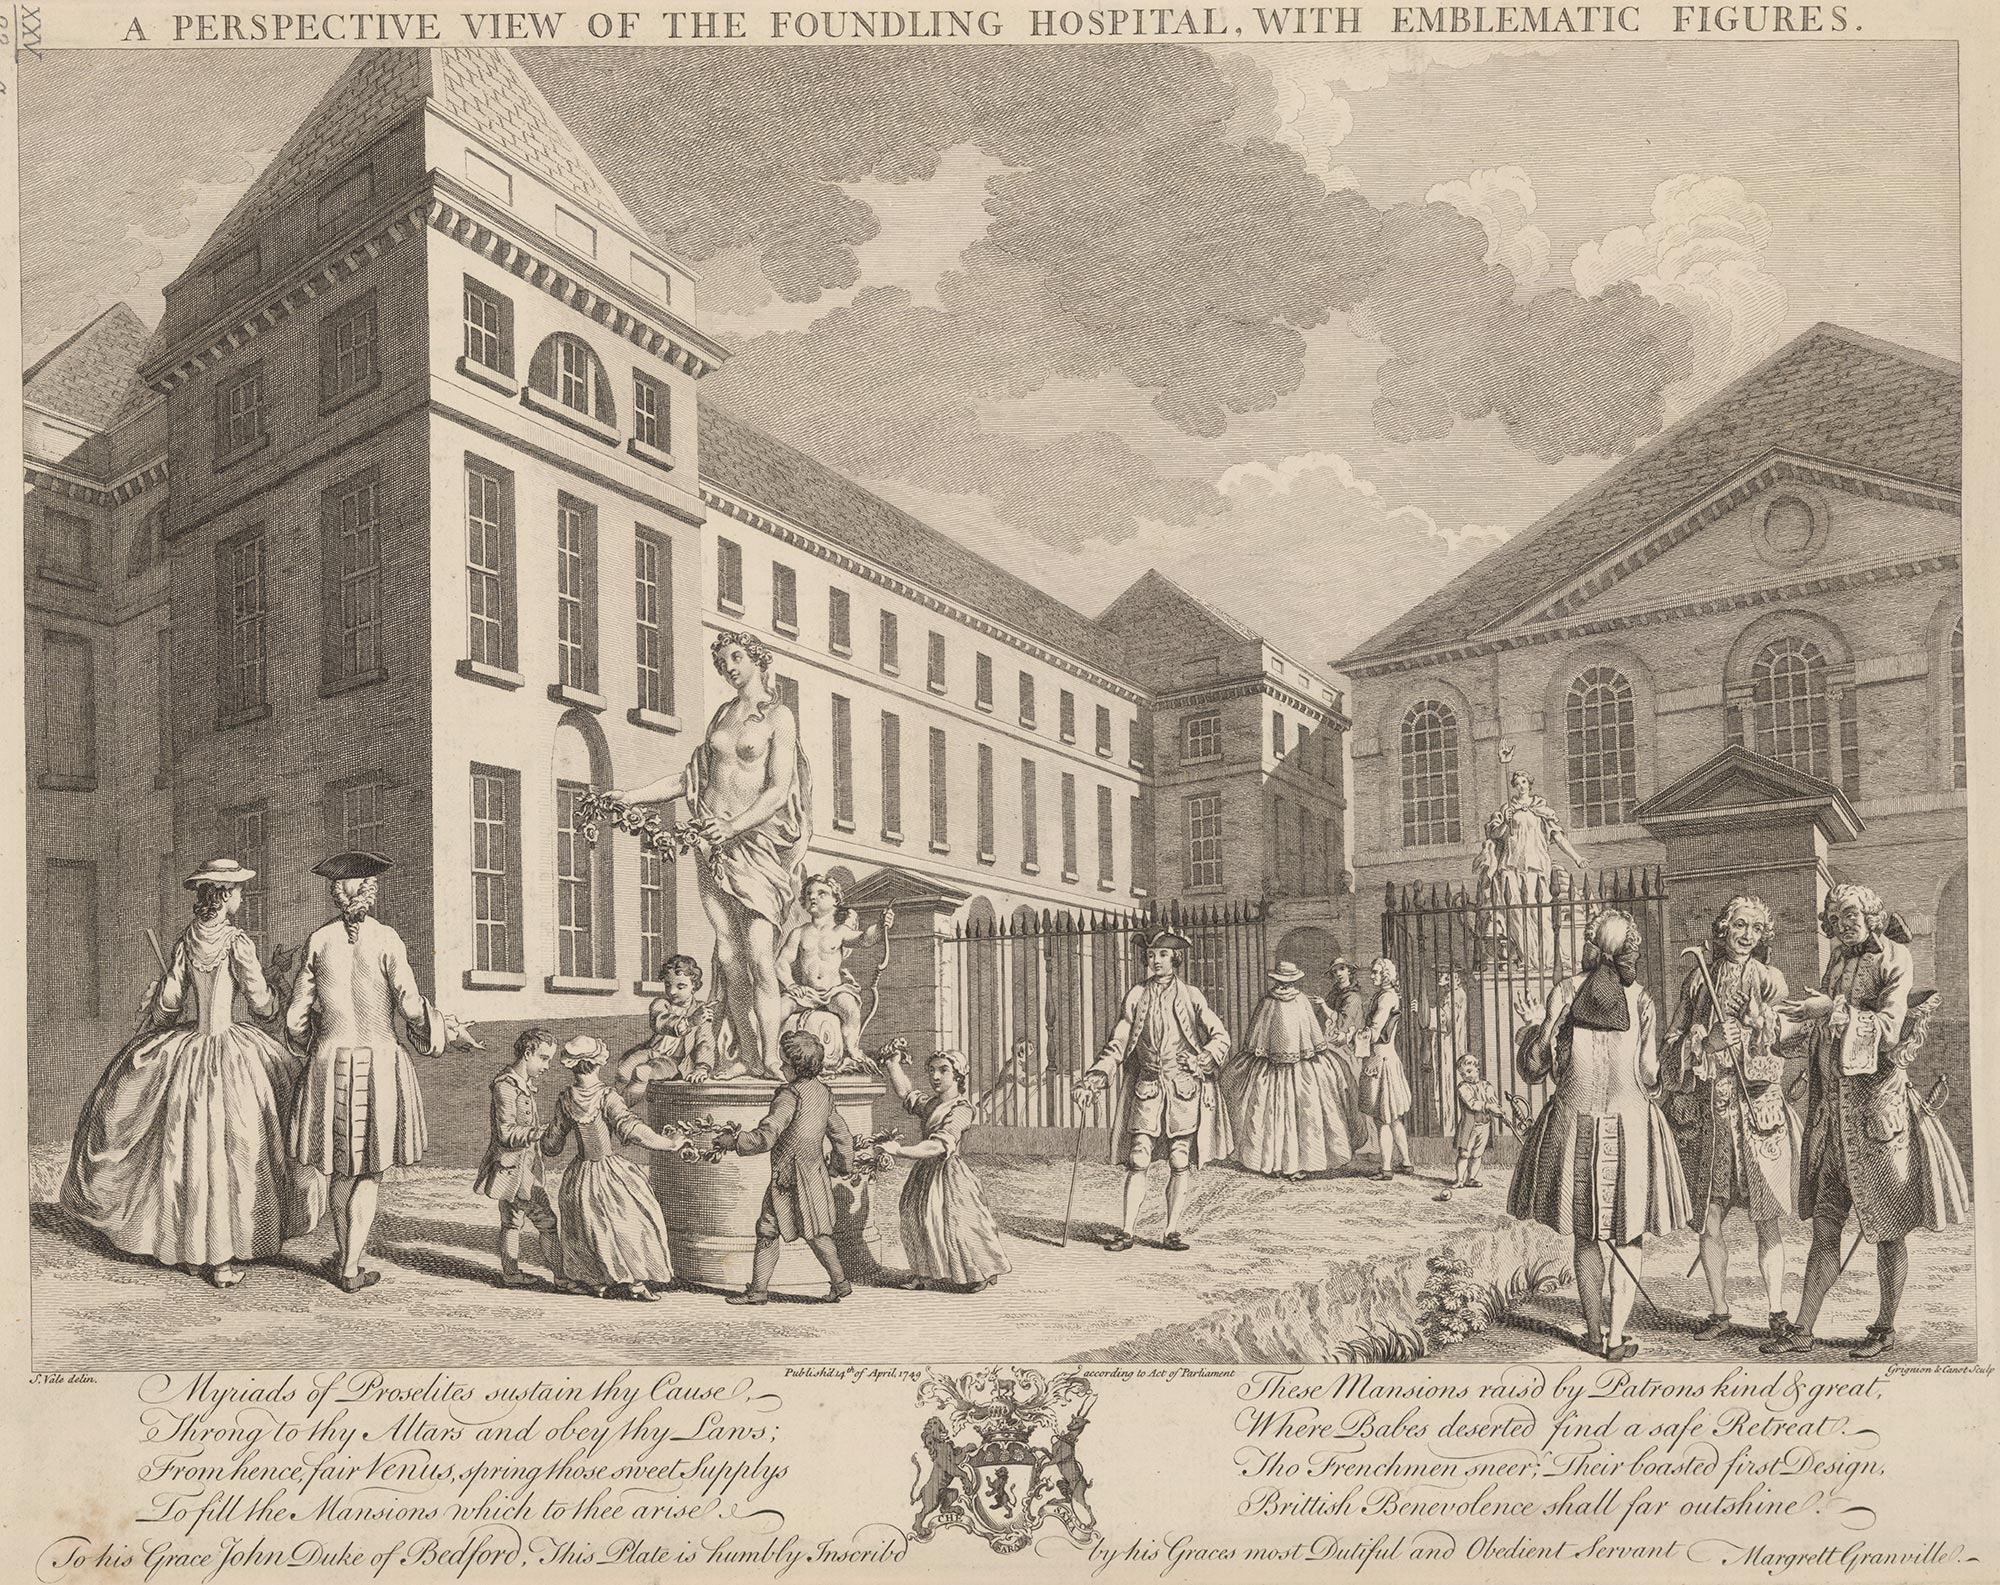 A view of the Foundling Hospital